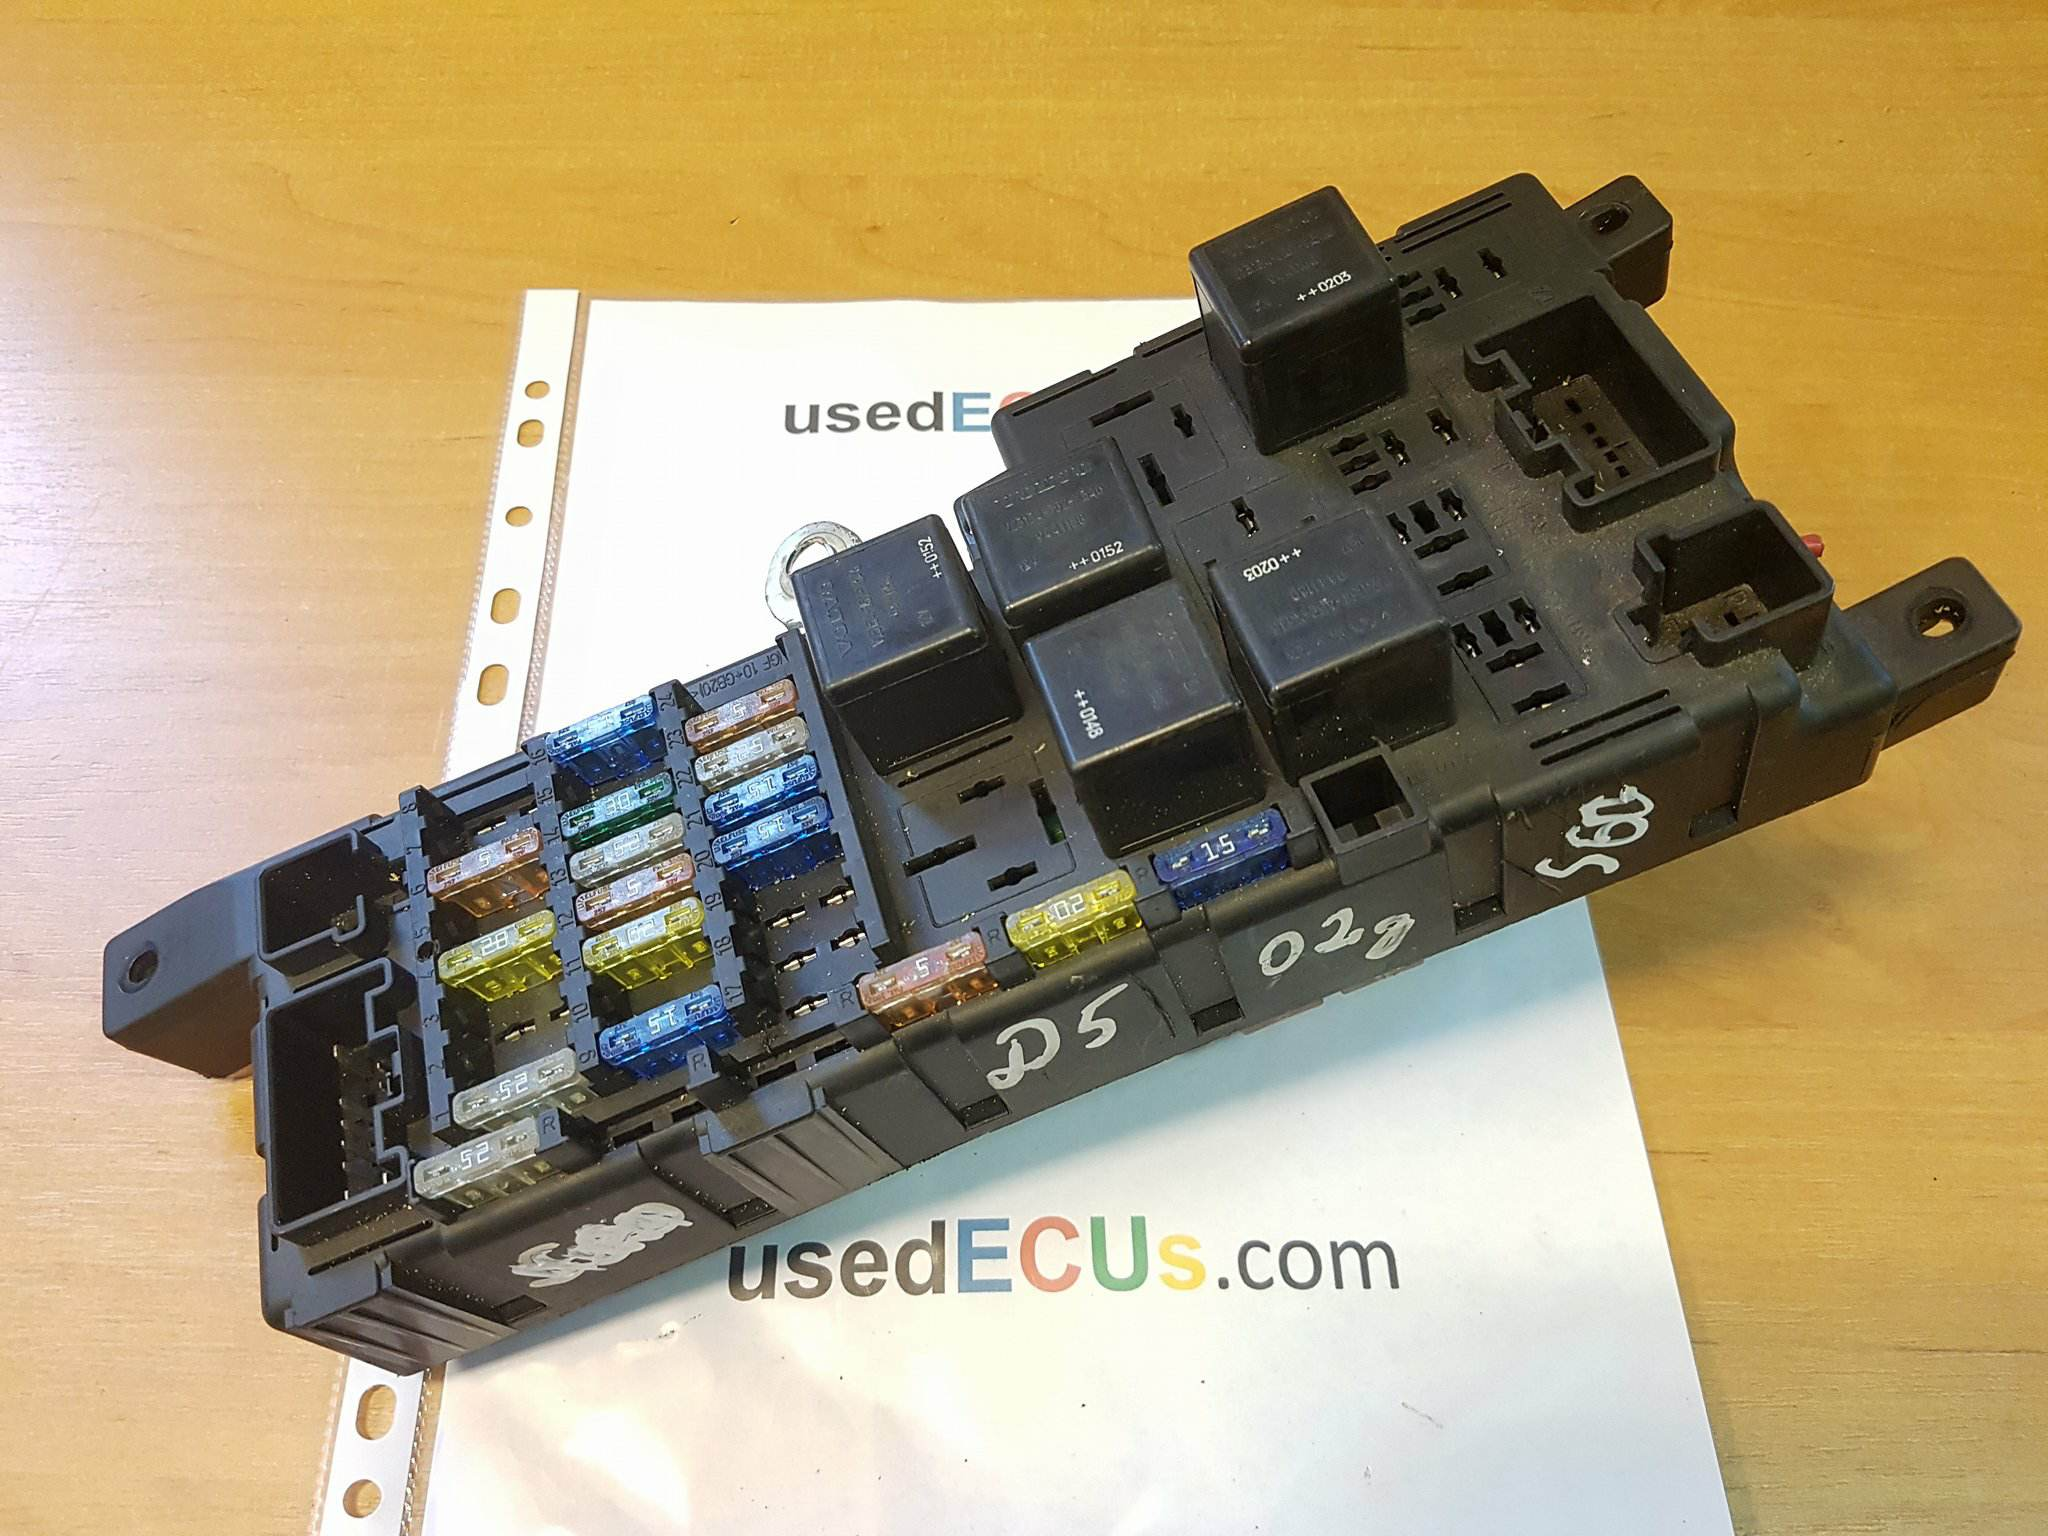 Volvo V70 S60 24 Turbo D5 Engine Fuse Box Relays 8637841 Toyota Avensis 2007 Price